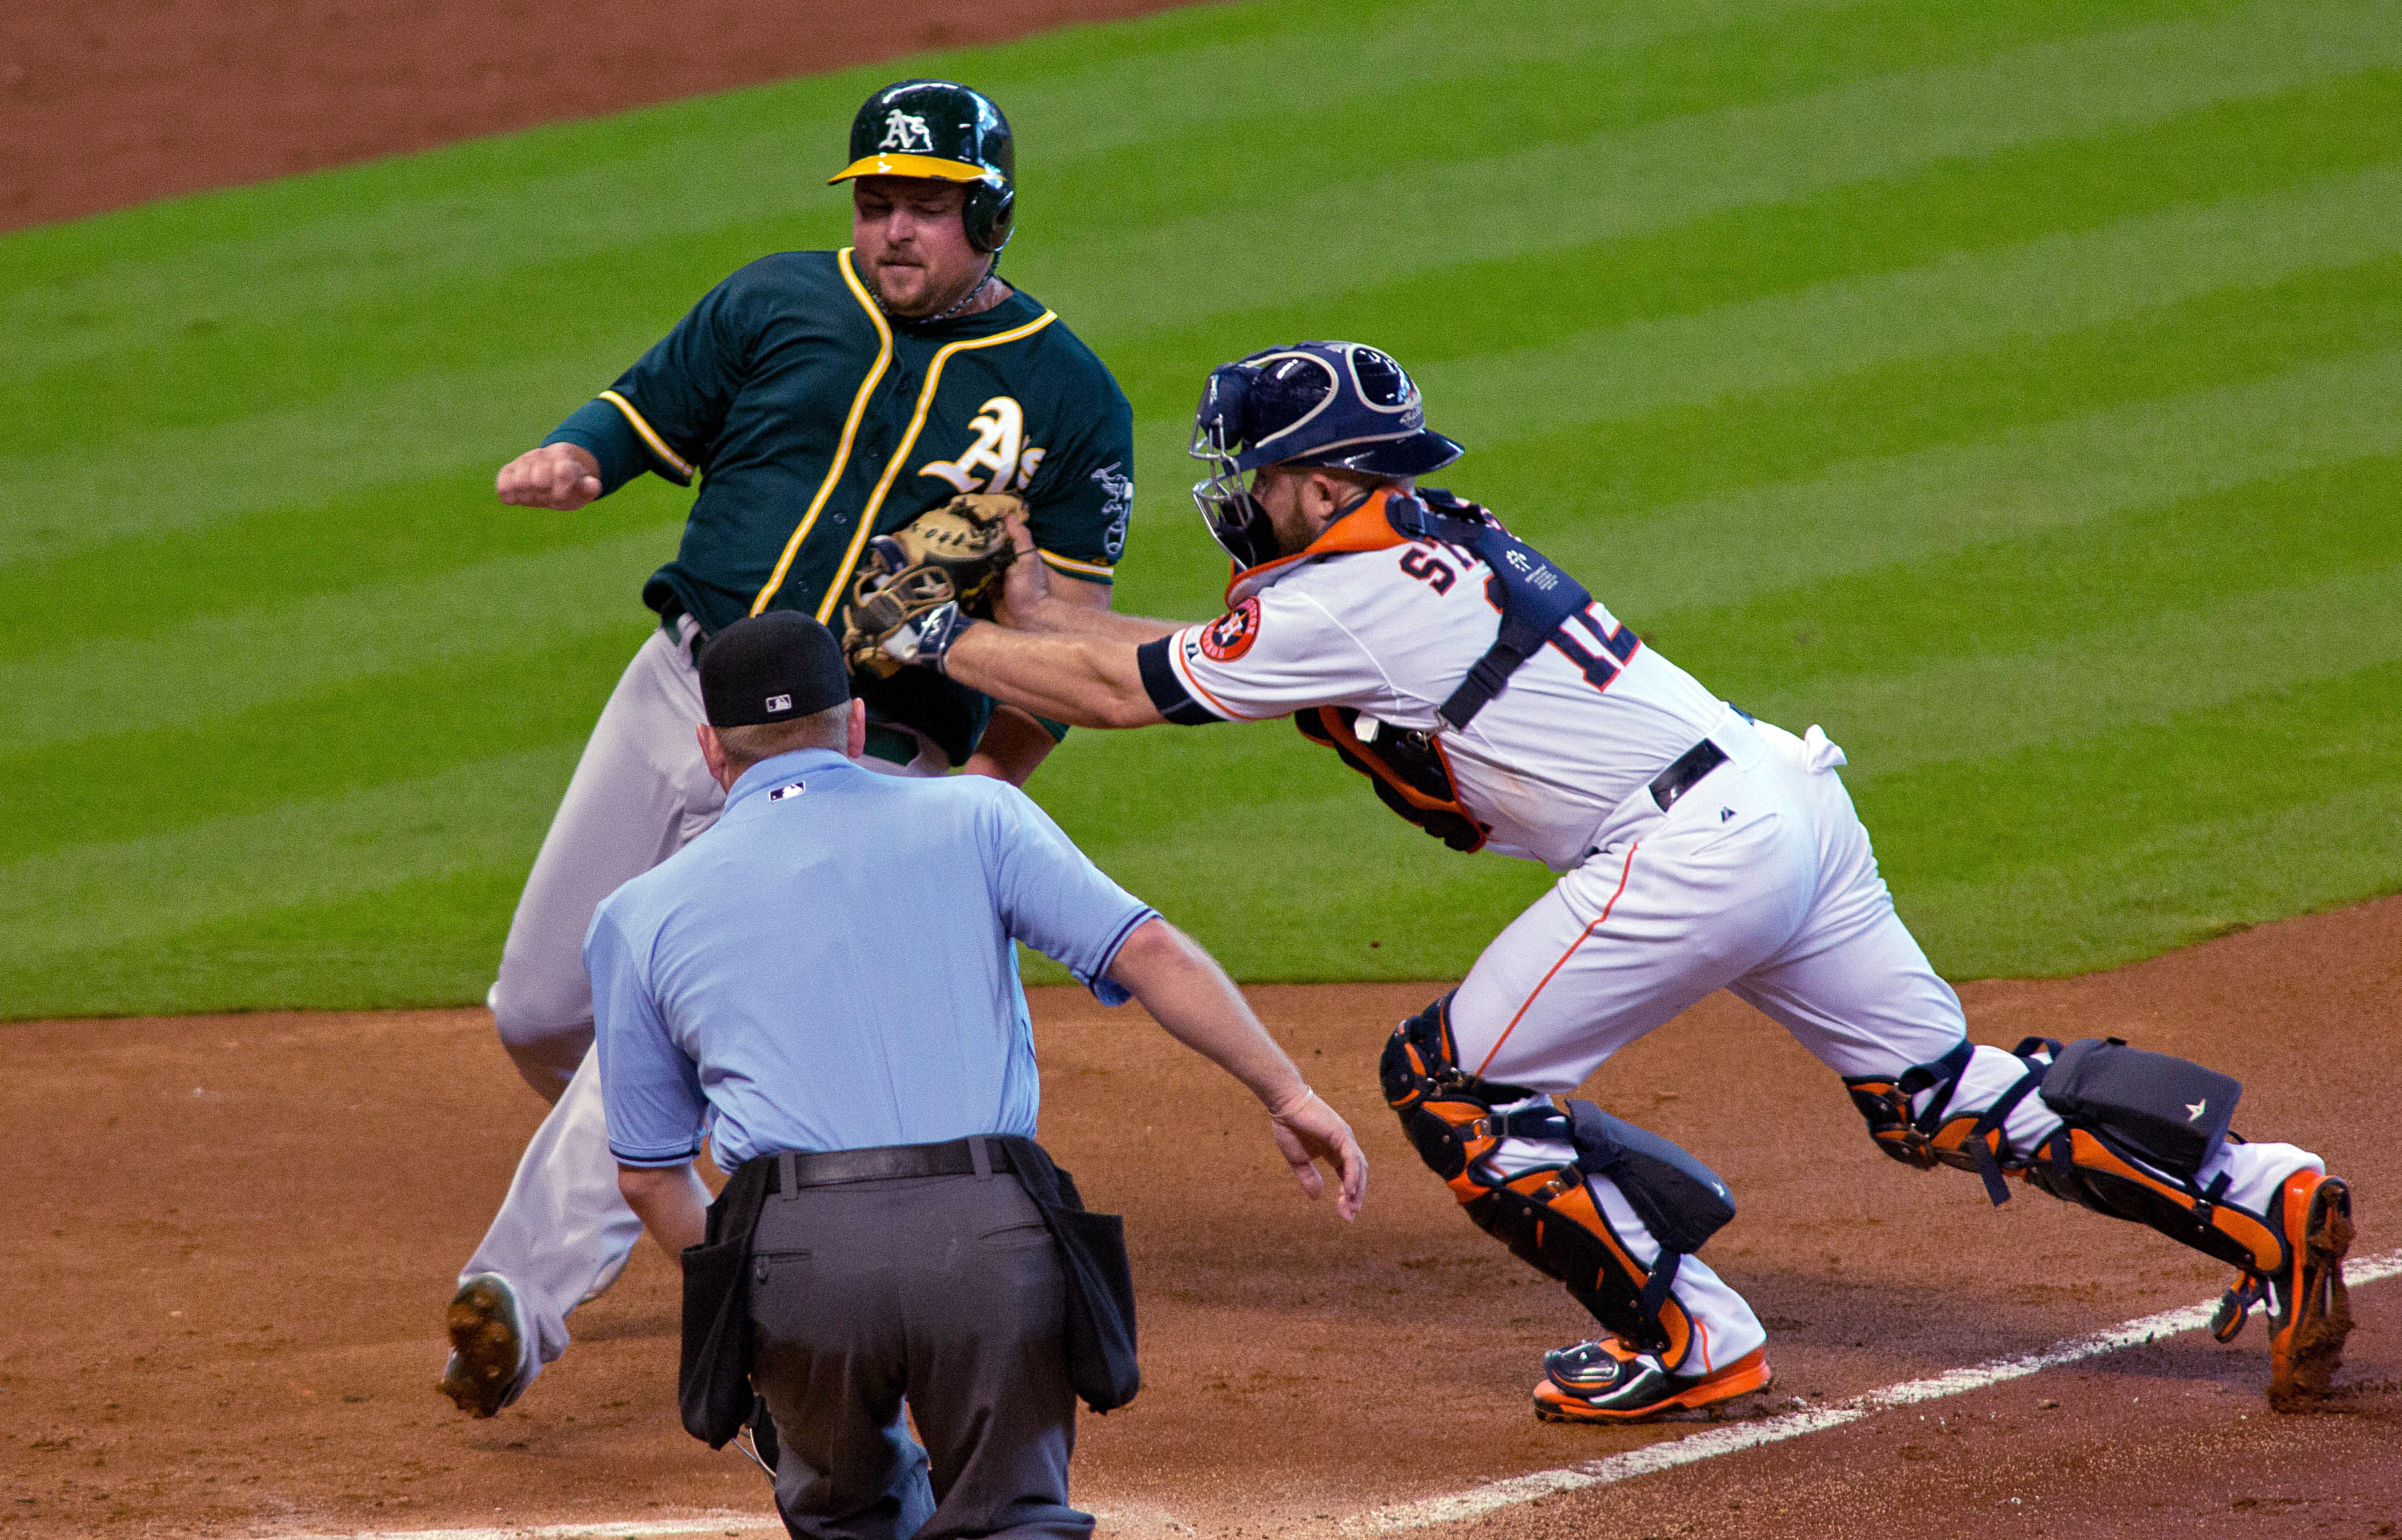 Oakland Athletics Billy Butler is tagged out at home by Houston Astros catcher Max Stassi in the second inning of a baseball game Sunday, Sept. 20, 2015, in Houston. (AP Photo/Richard Carson)